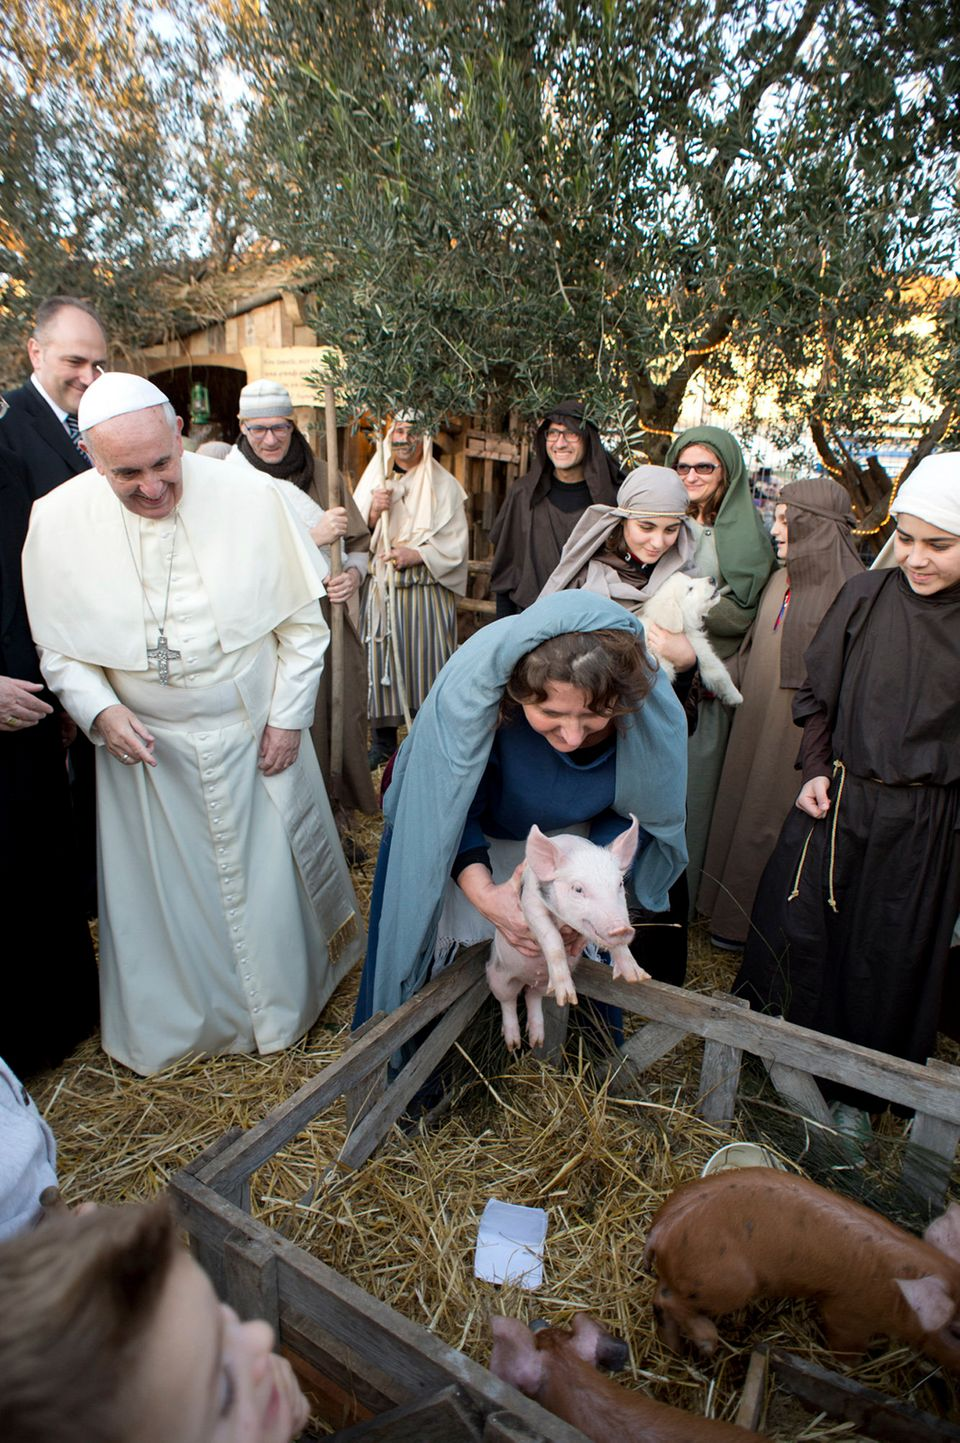 In this photo provided by the Vatican paper L'Osservatore Romano, Pope Francis visits a living nativity scene staged at the S